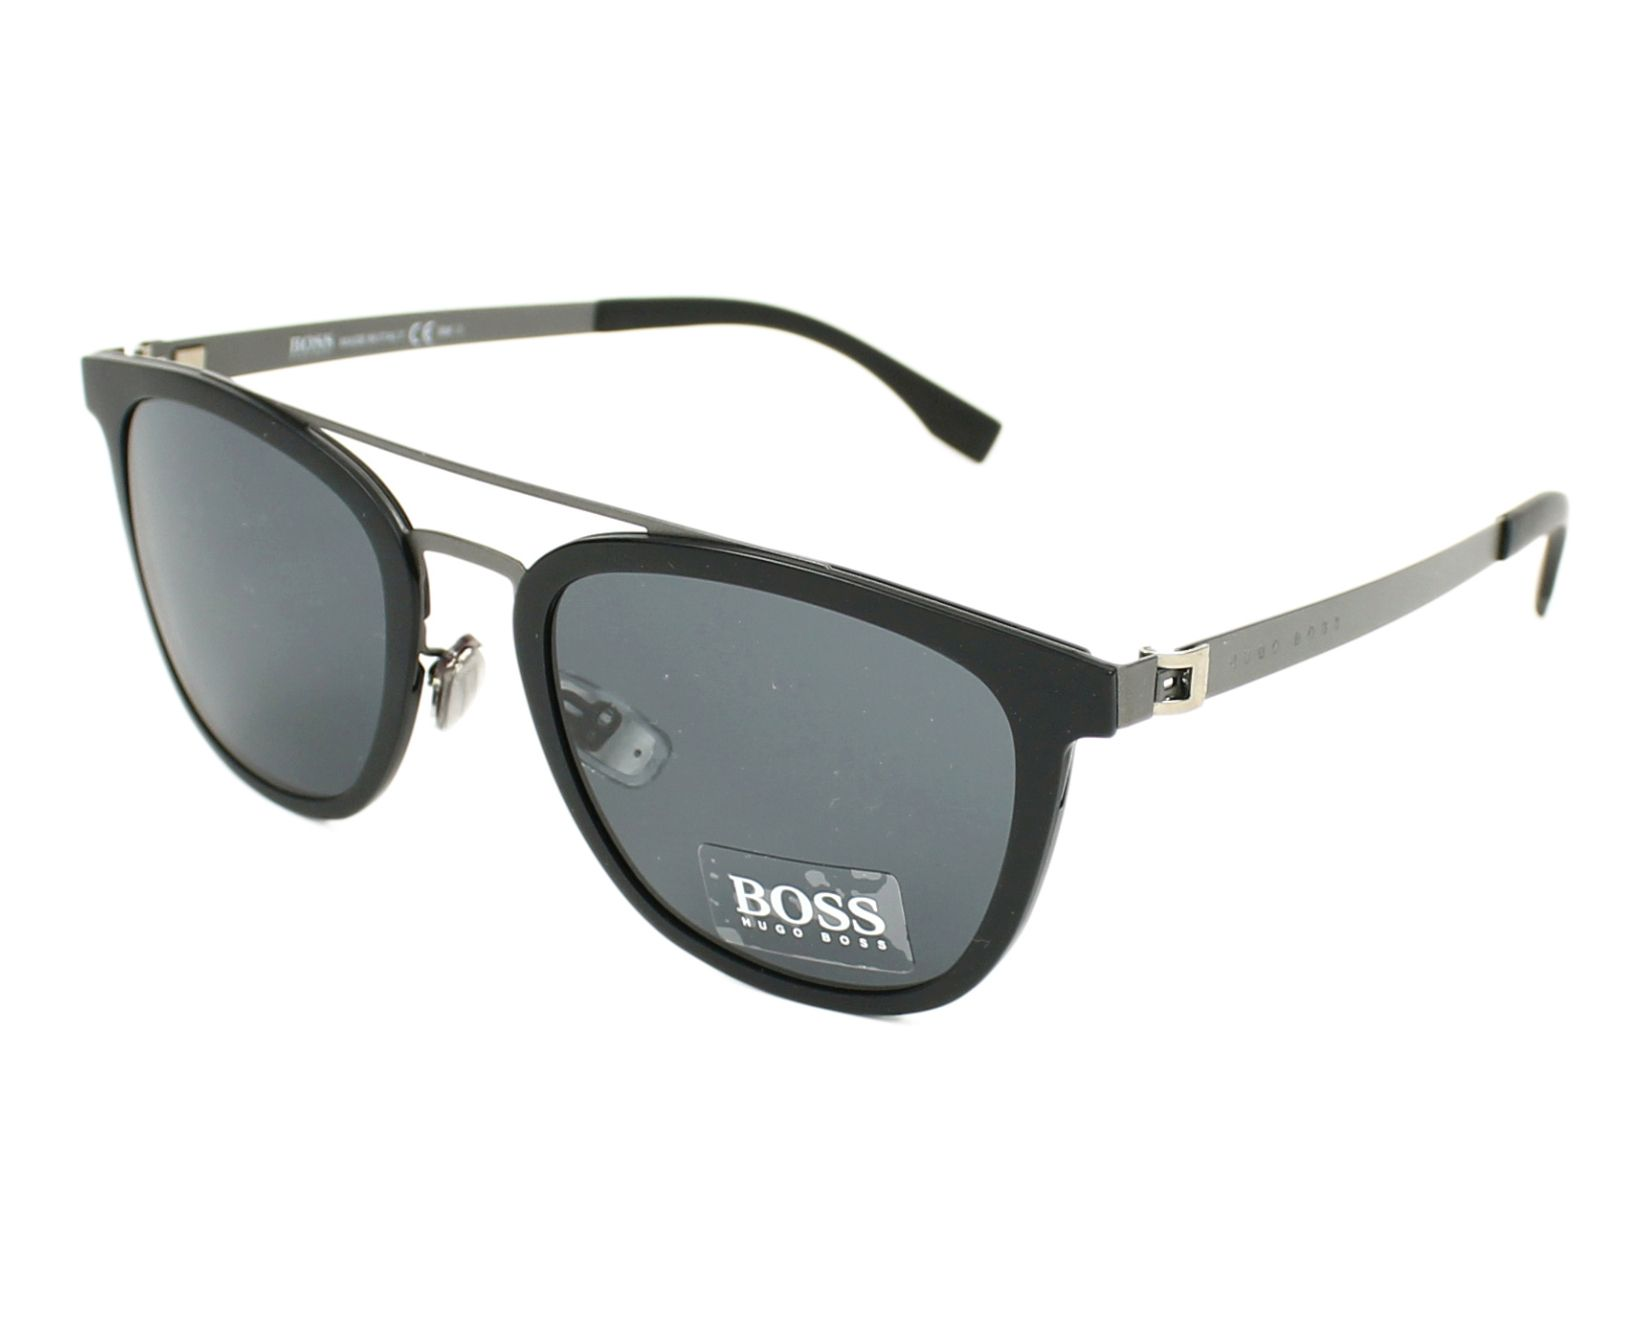 b79782c046 Hugo Boss Aviator Sunglasses « One More Soul